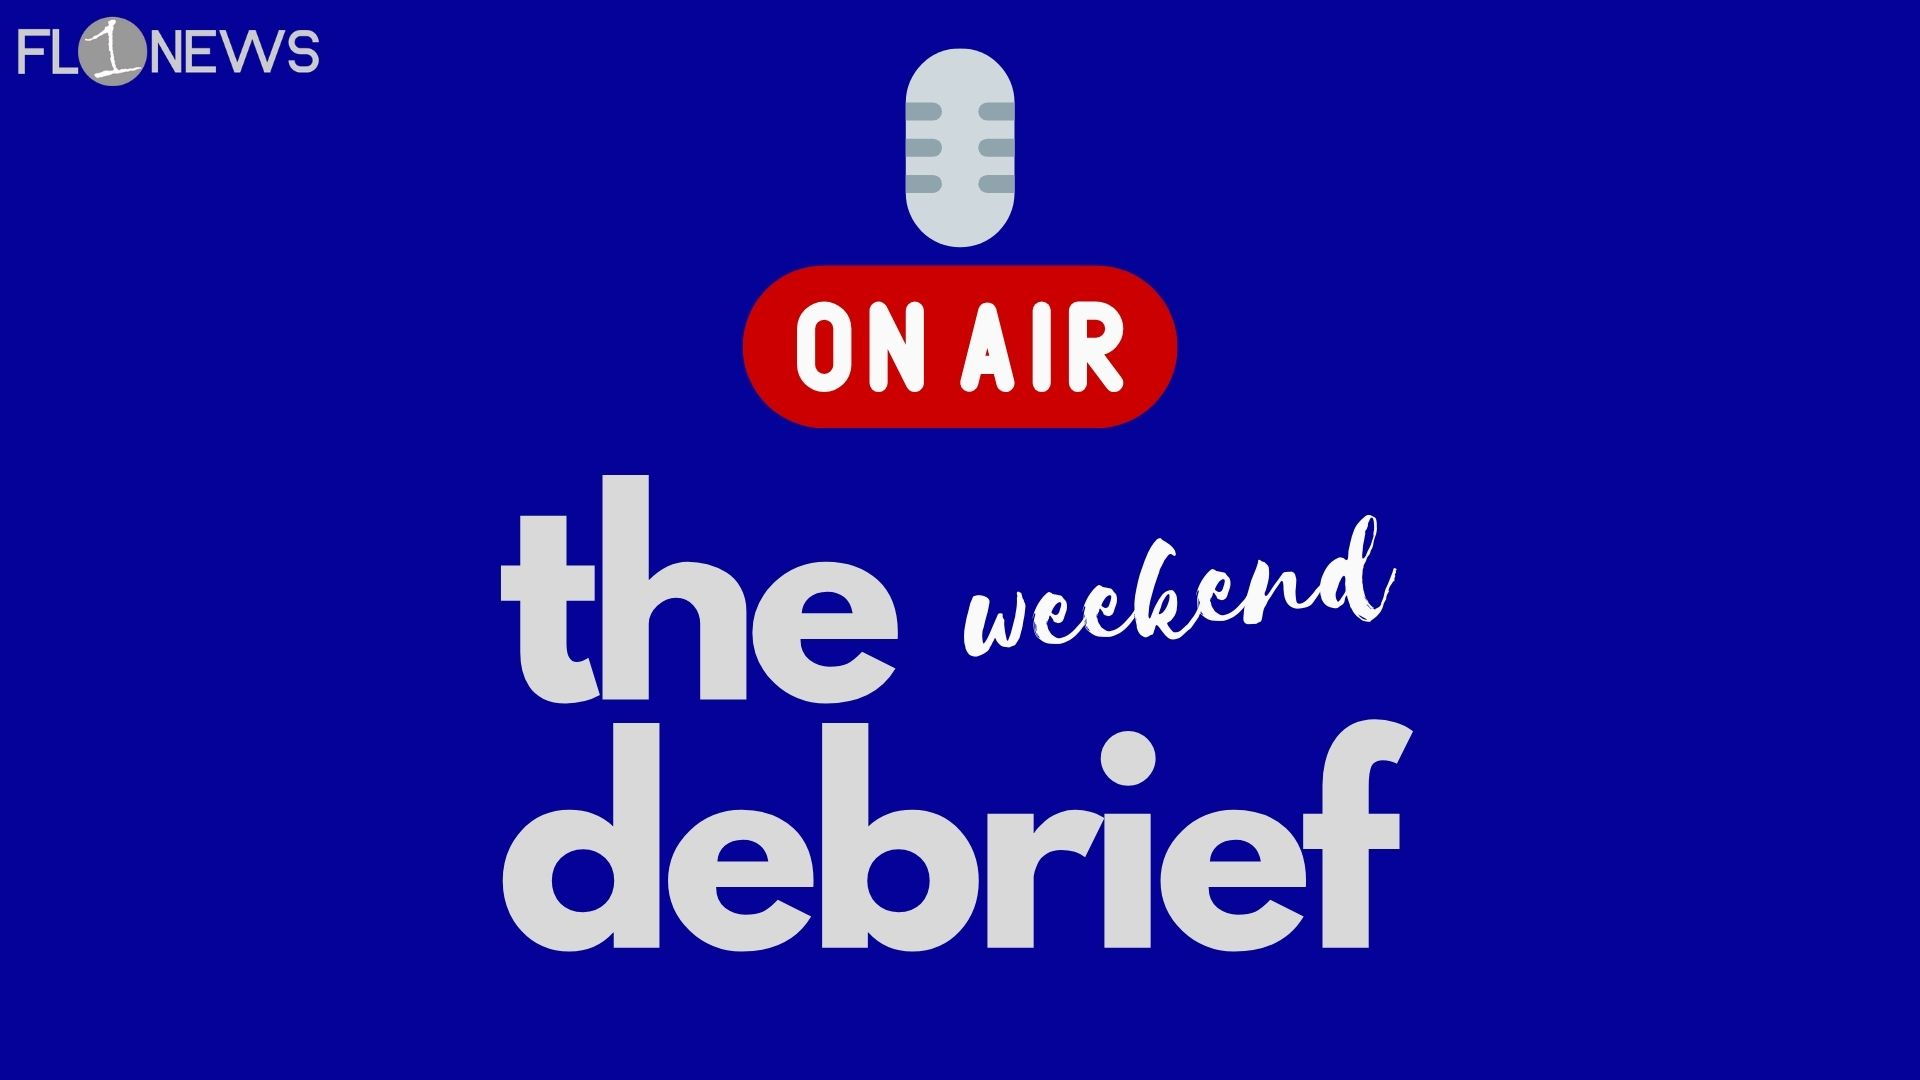 DEBRIEF SPECIAL: Looking back at Election Day 2020 & beyond (podcast)